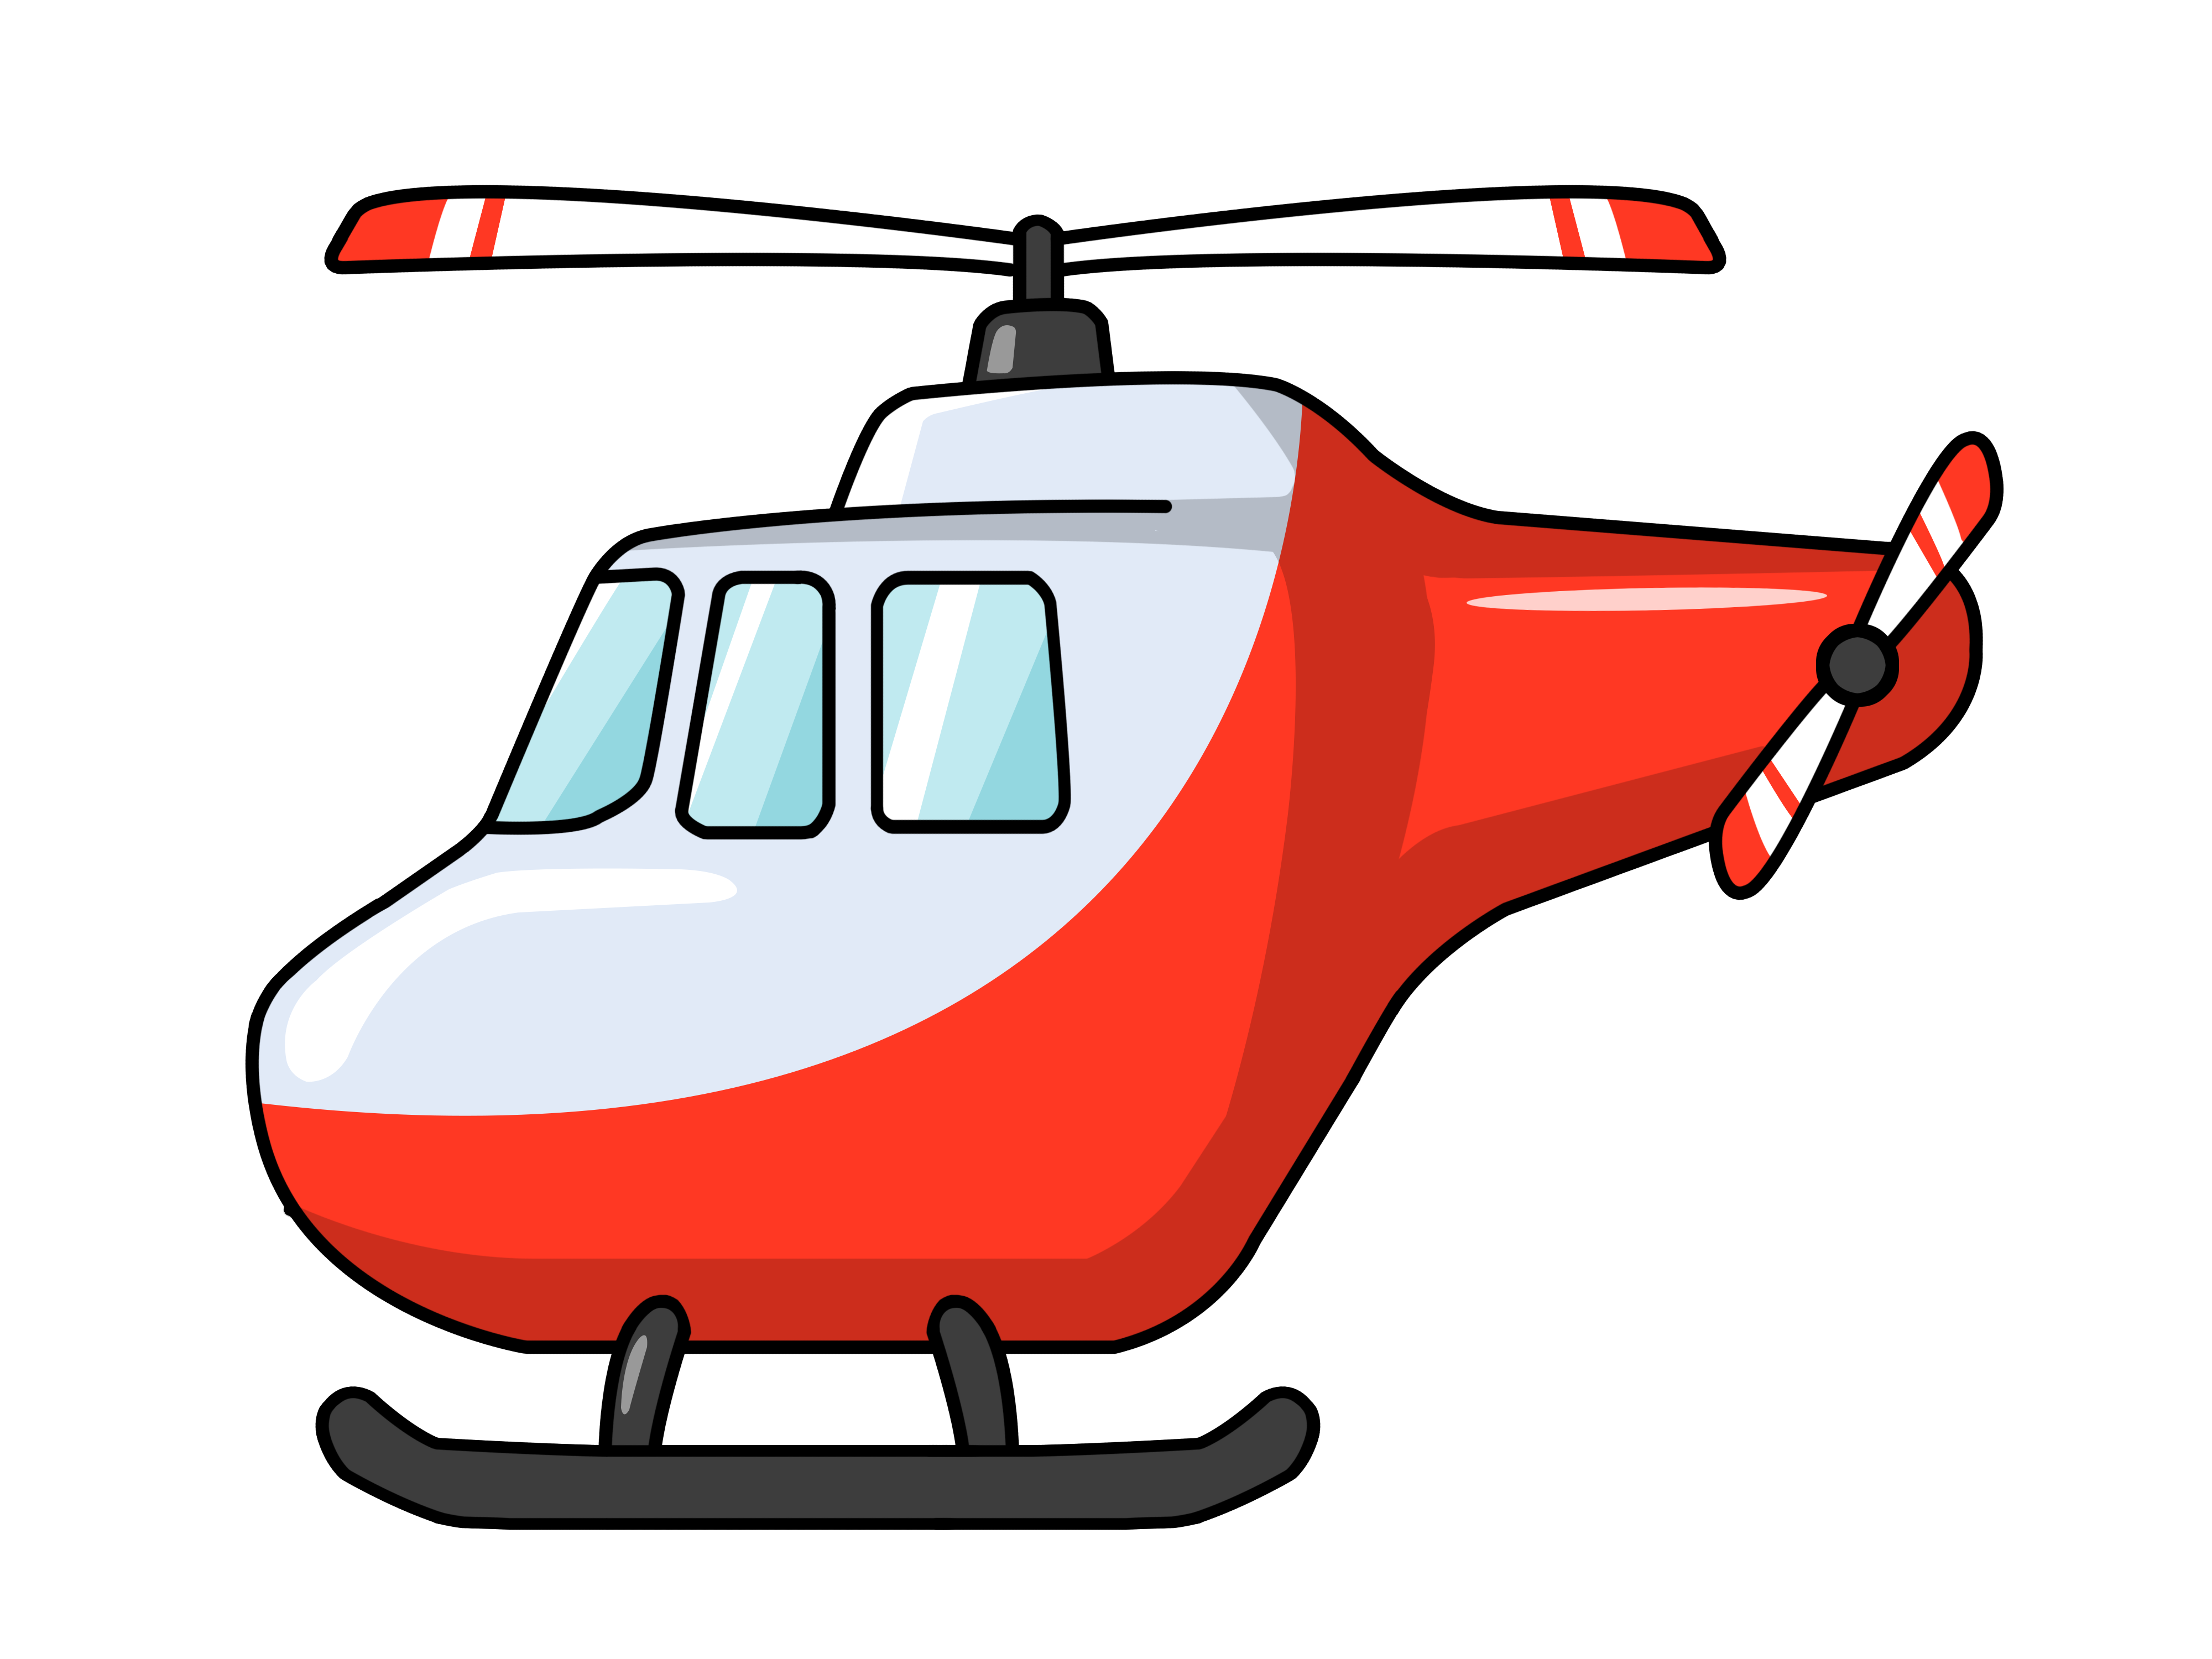 Medical Helicopter Clipart Images & Pictures - Becuo